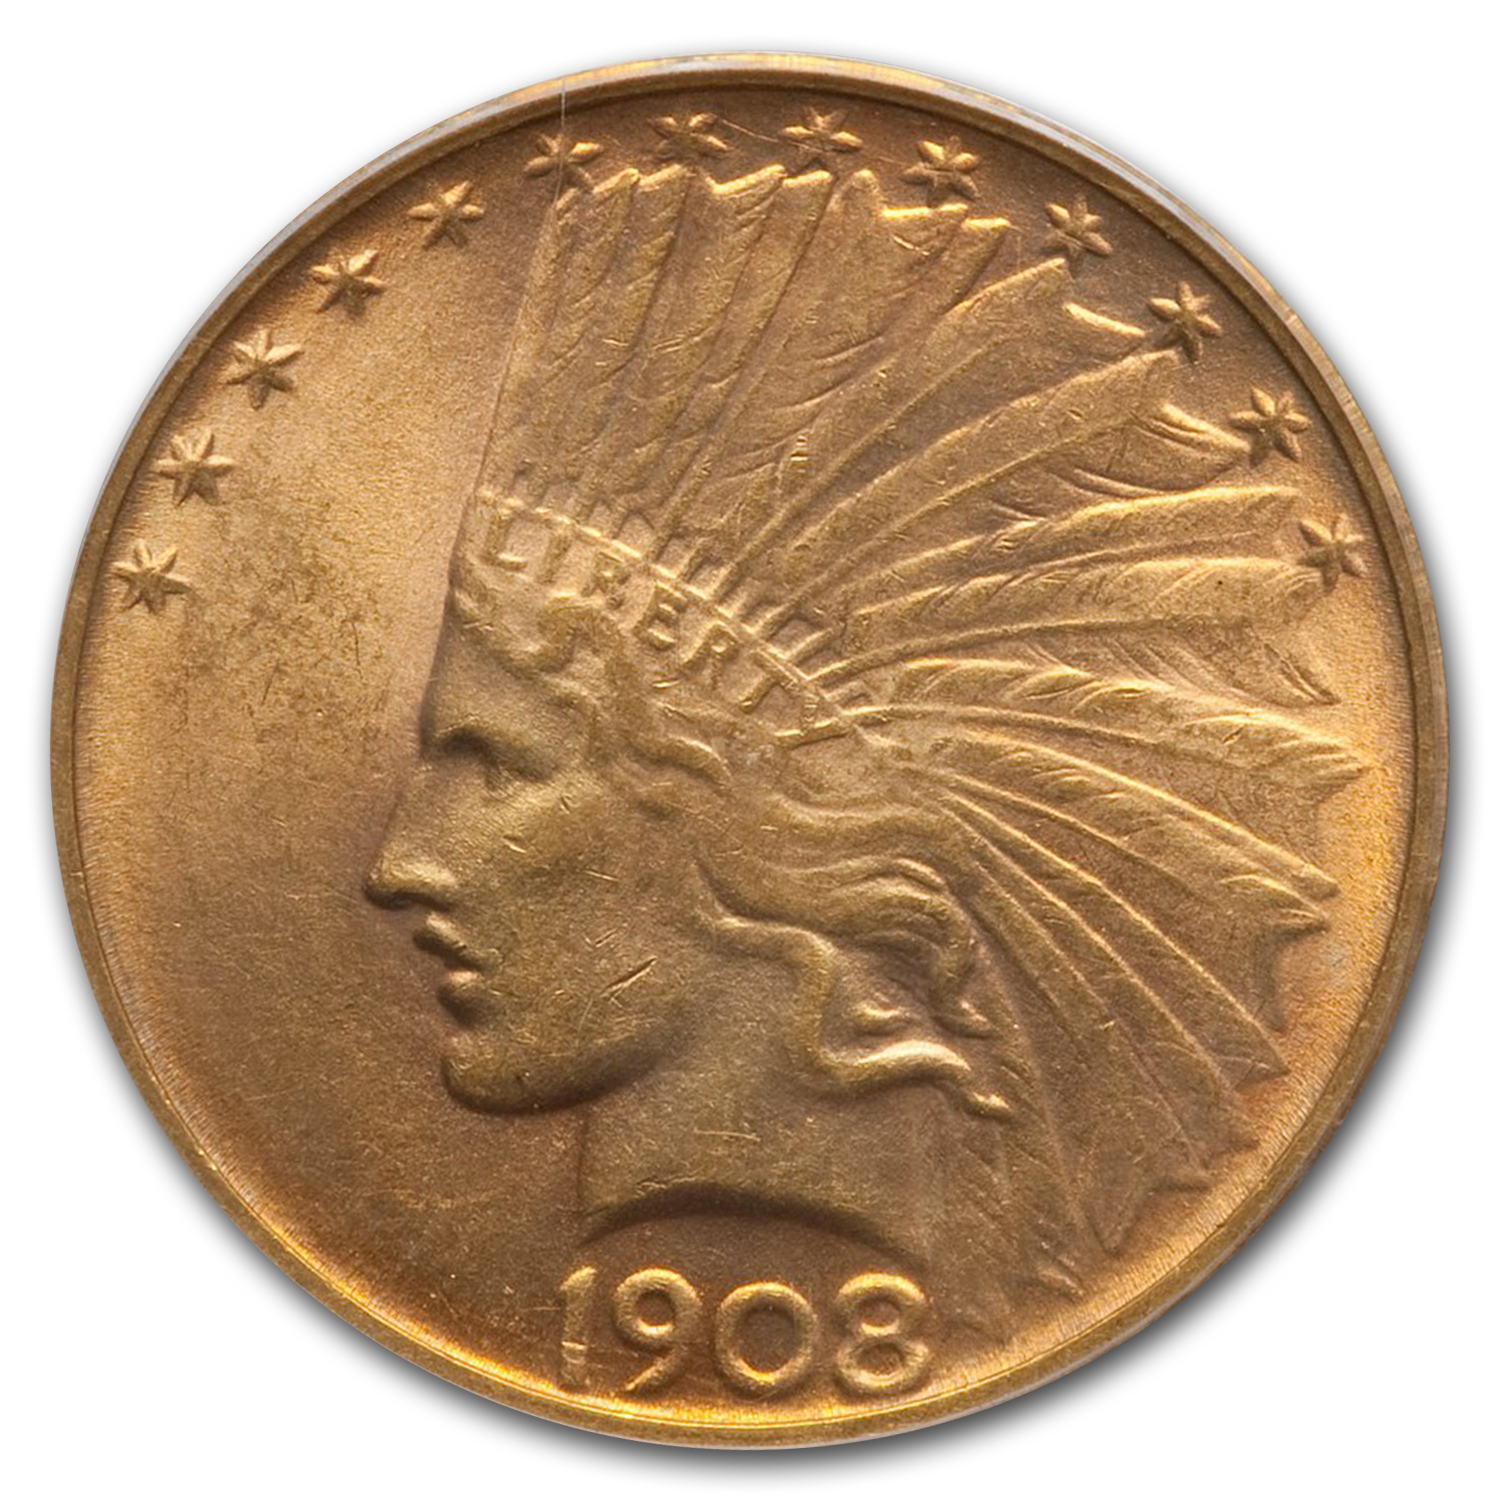 1908-D $10 Indian Gold Eagle - No Motto - MS-63 PCGS